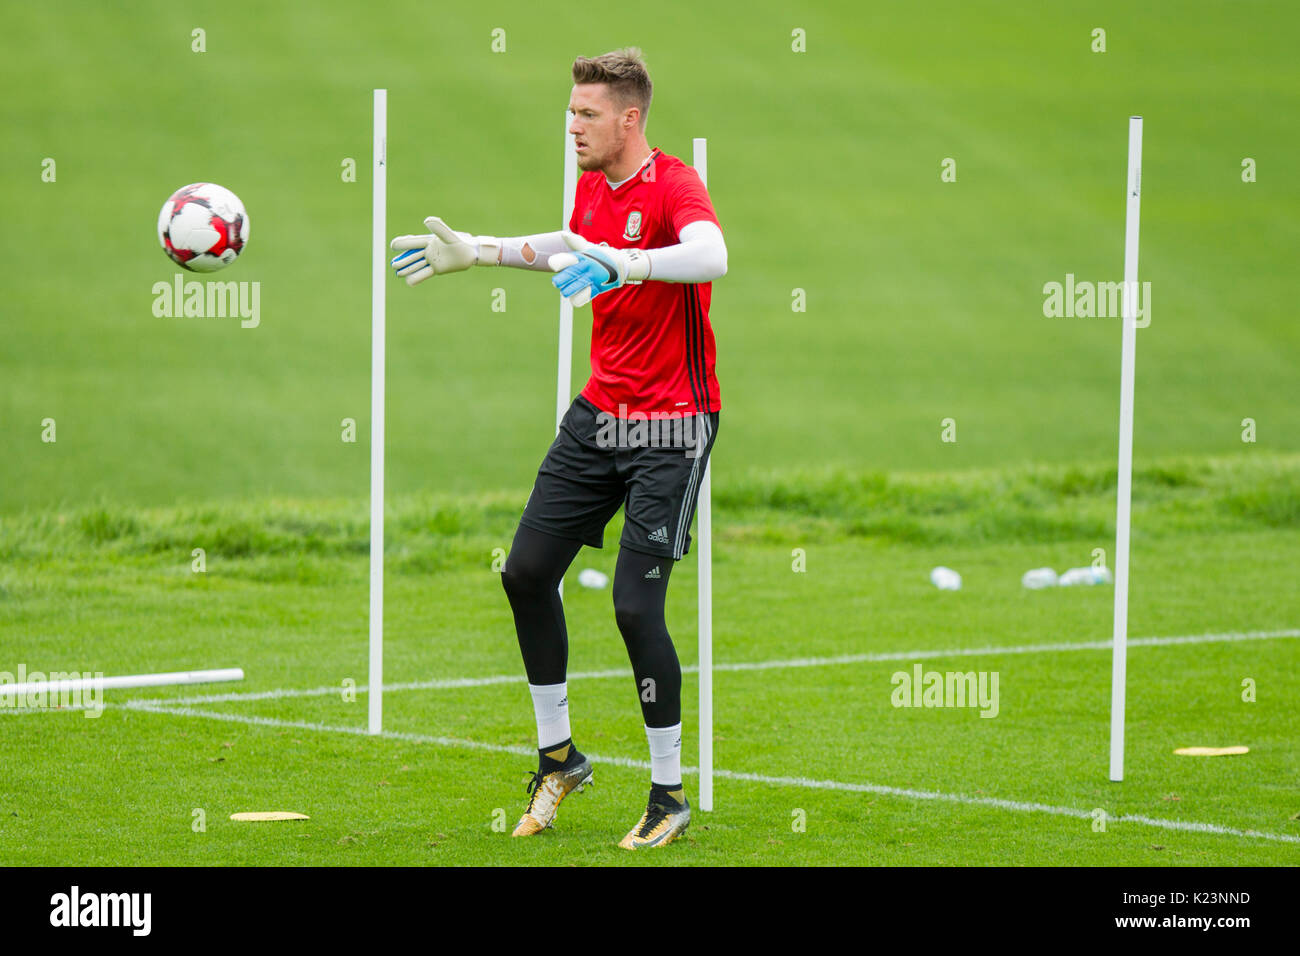 Hensol, Wales, UK, 29th August 2017. Wayne Hennessey during Wales national team training ahead of the World Cup Stock Photo